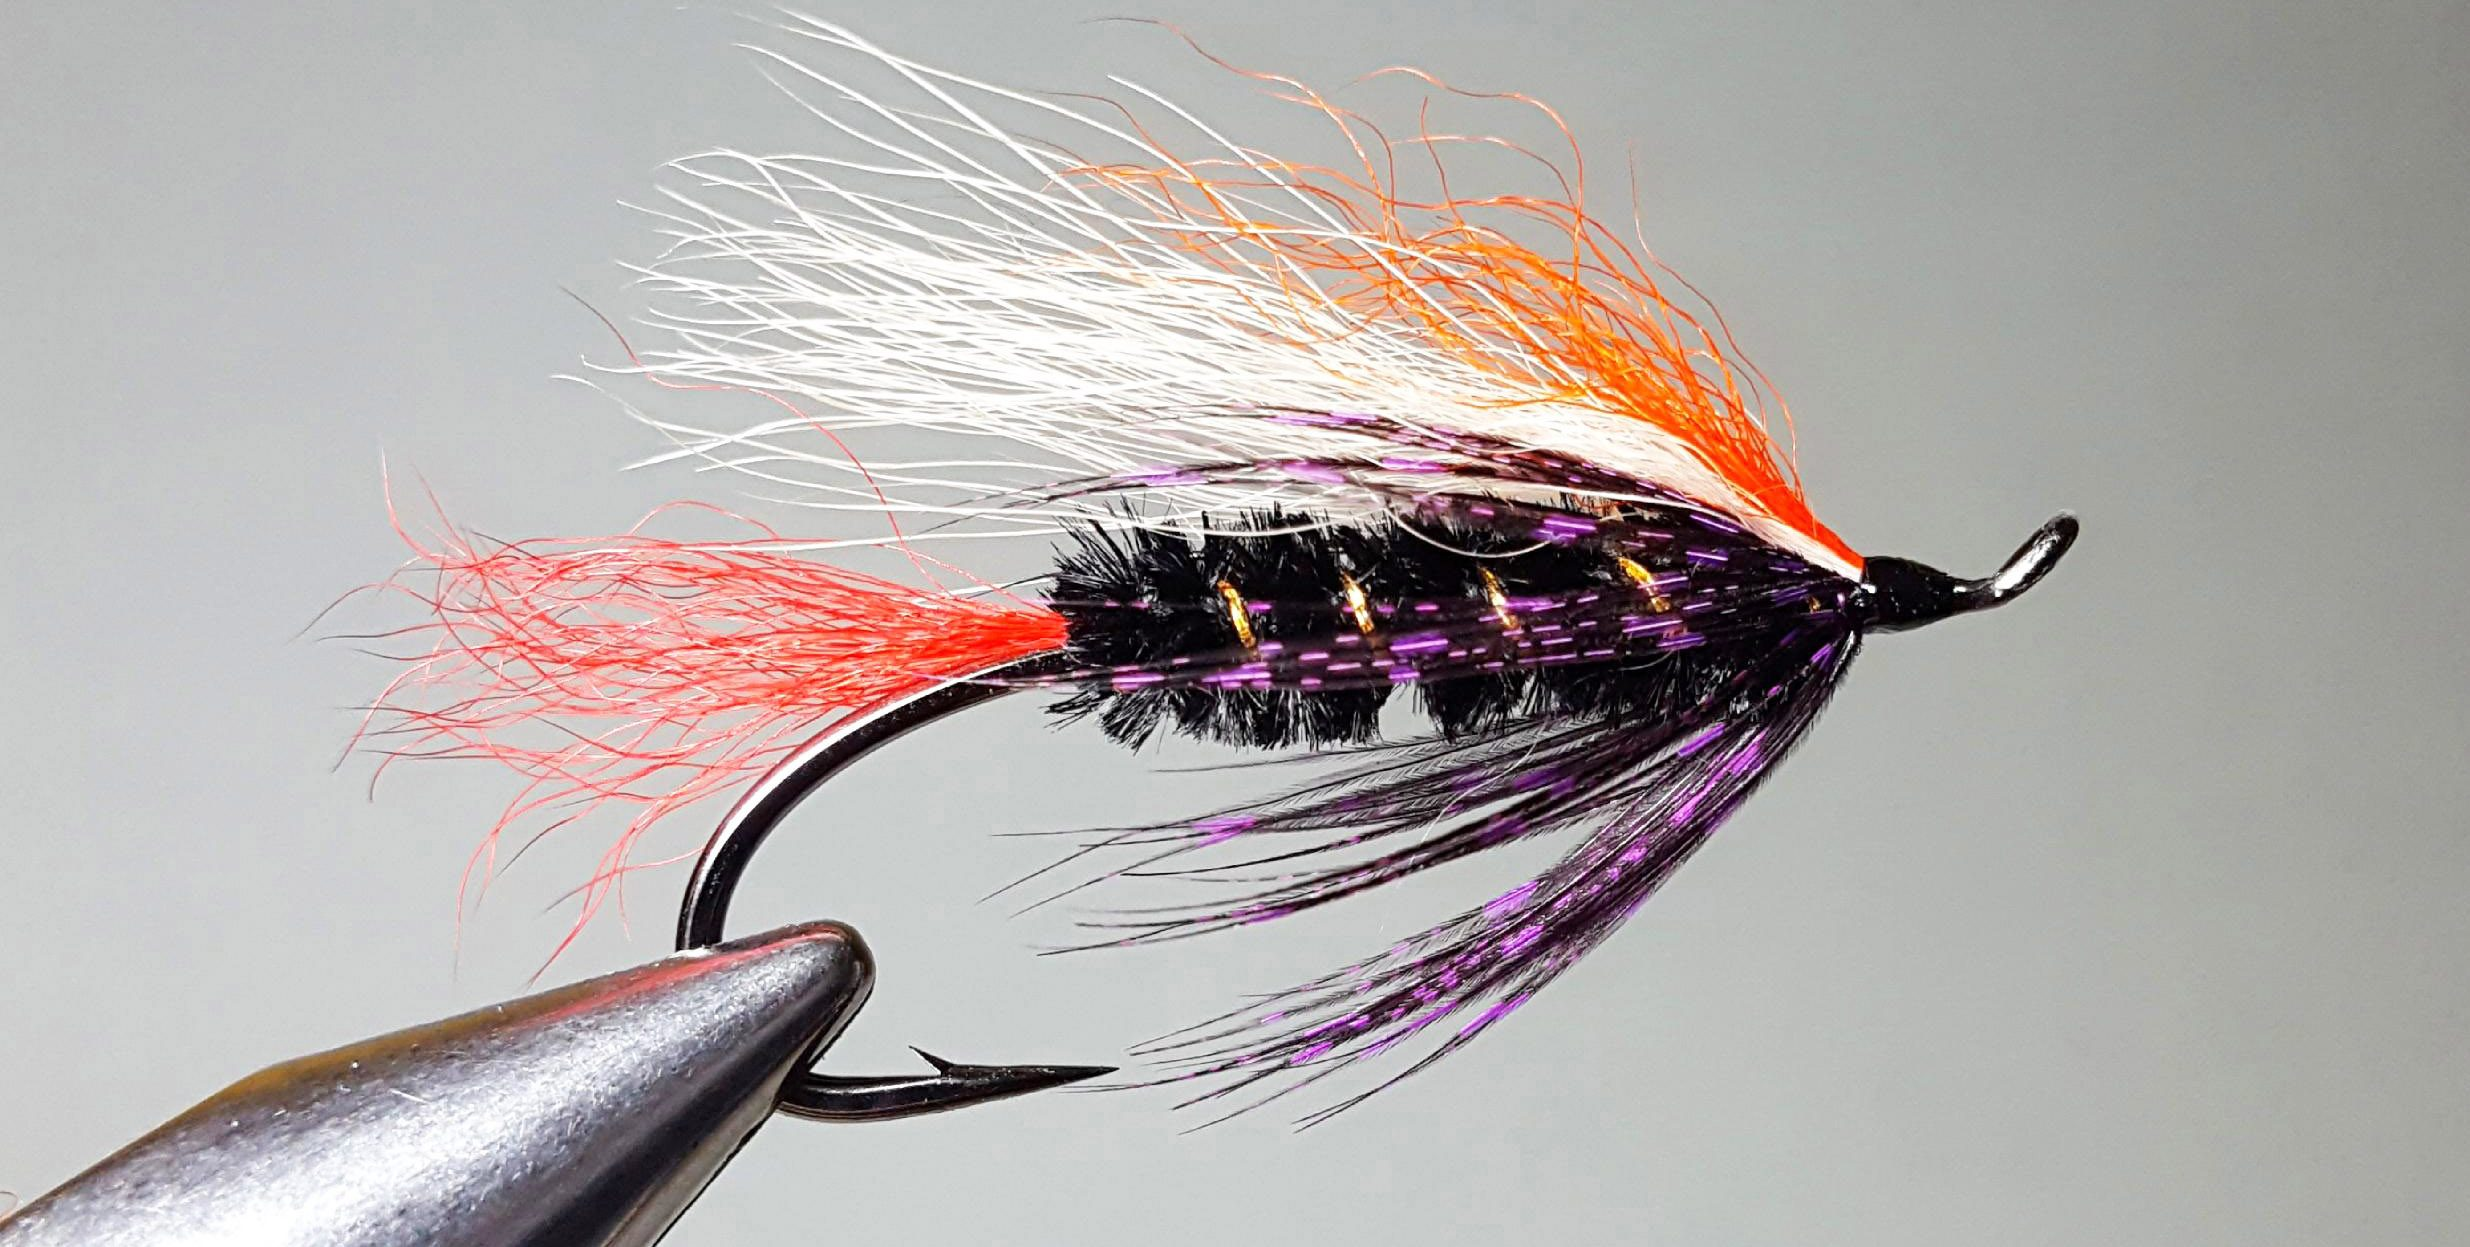 Prichard's Western Angler